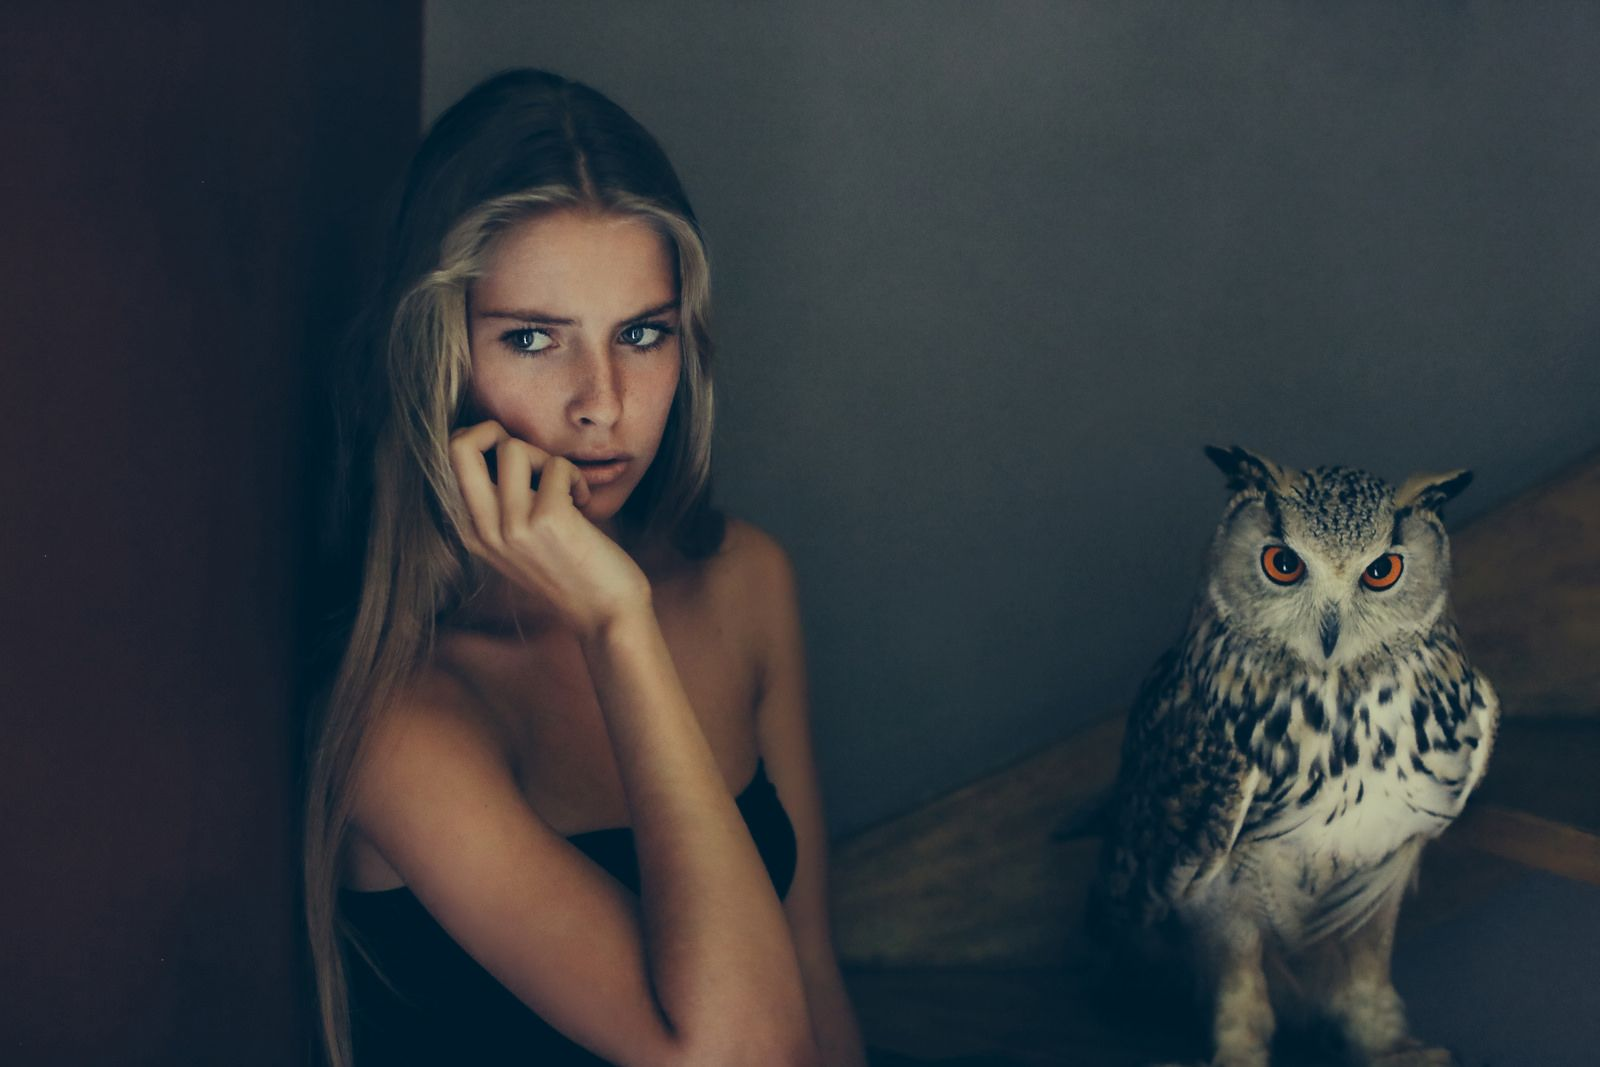 The girl with the owl | Flickr - Photo Sharing!